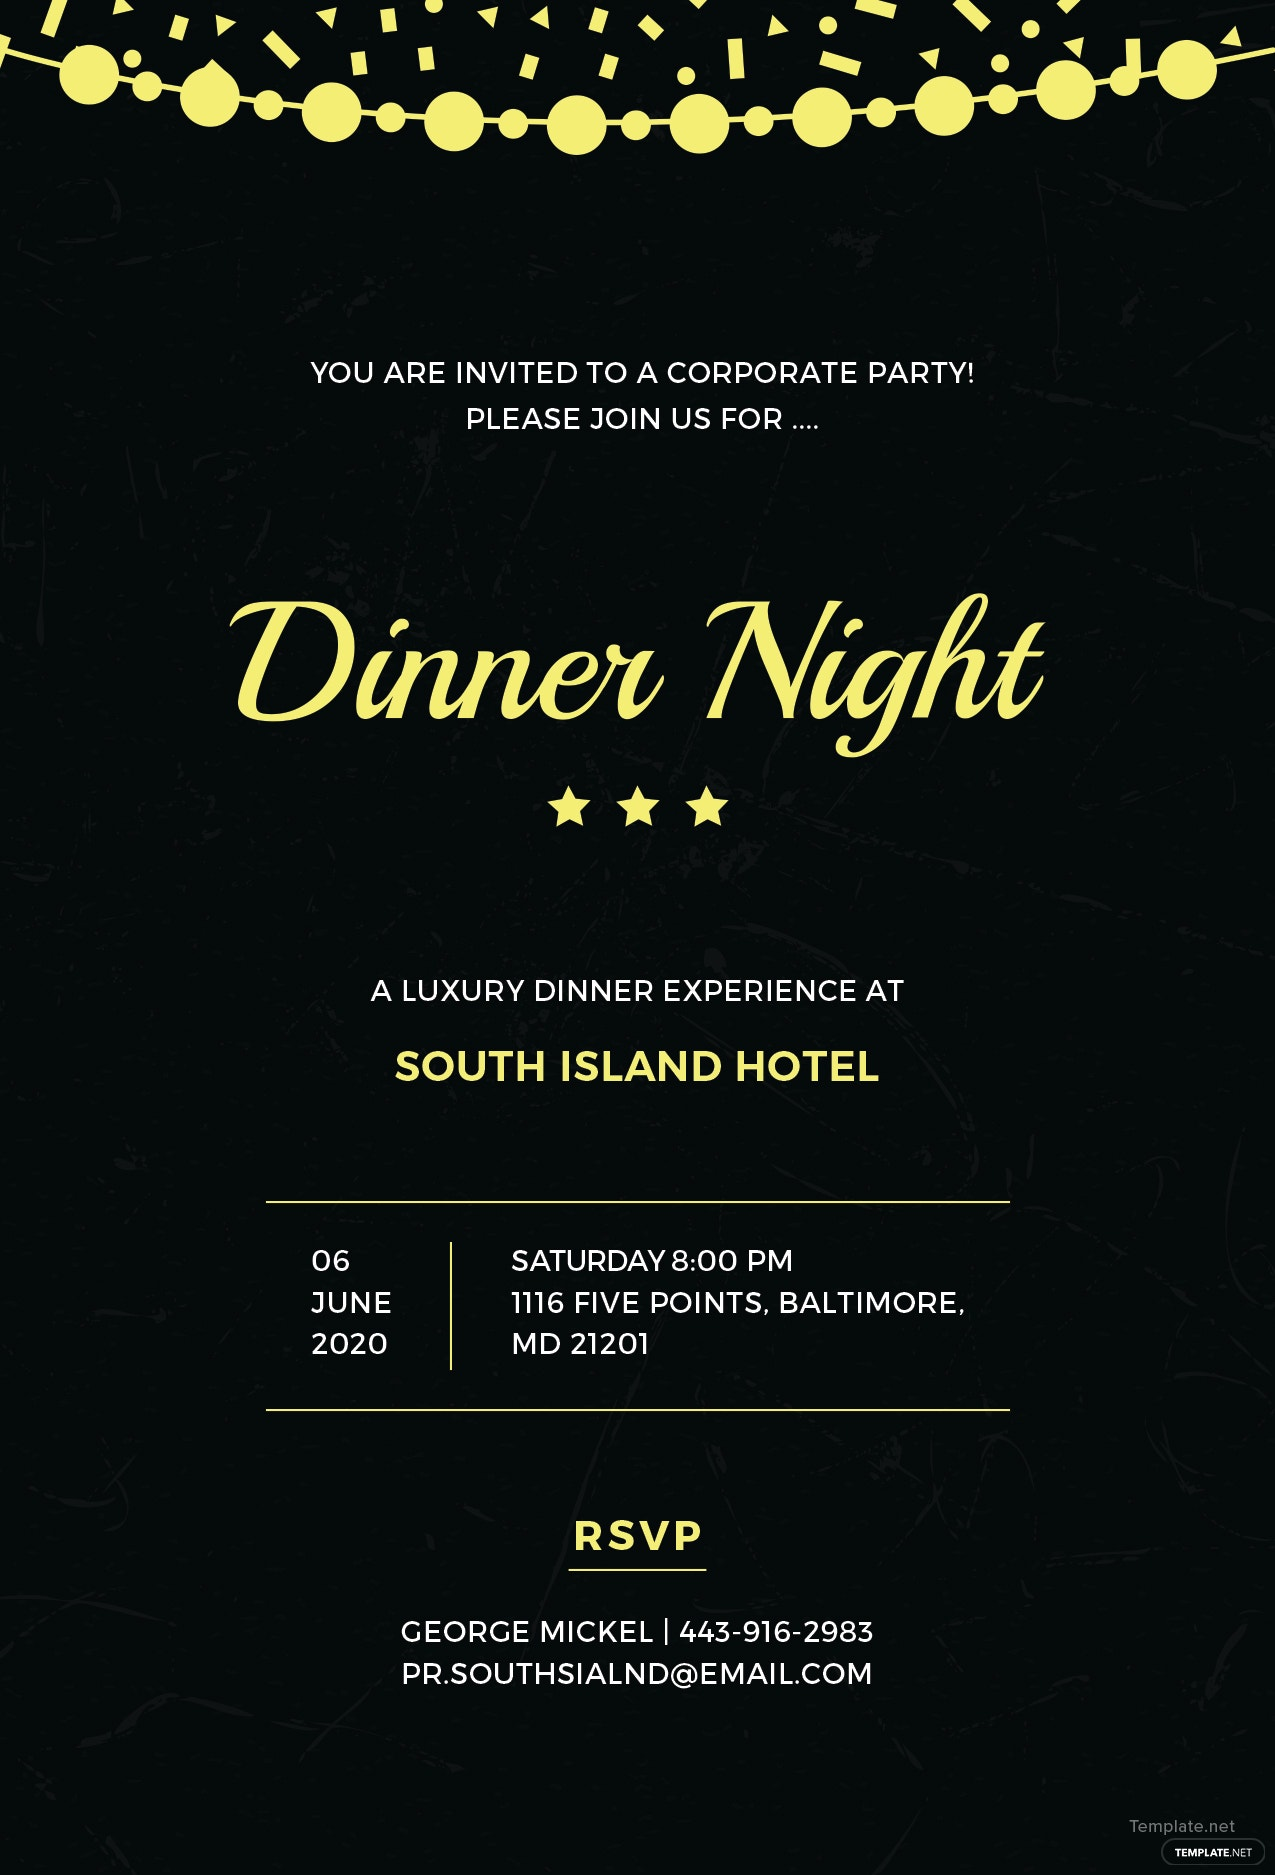 Free Company Dinner Night Invitation Template in Adobe ...